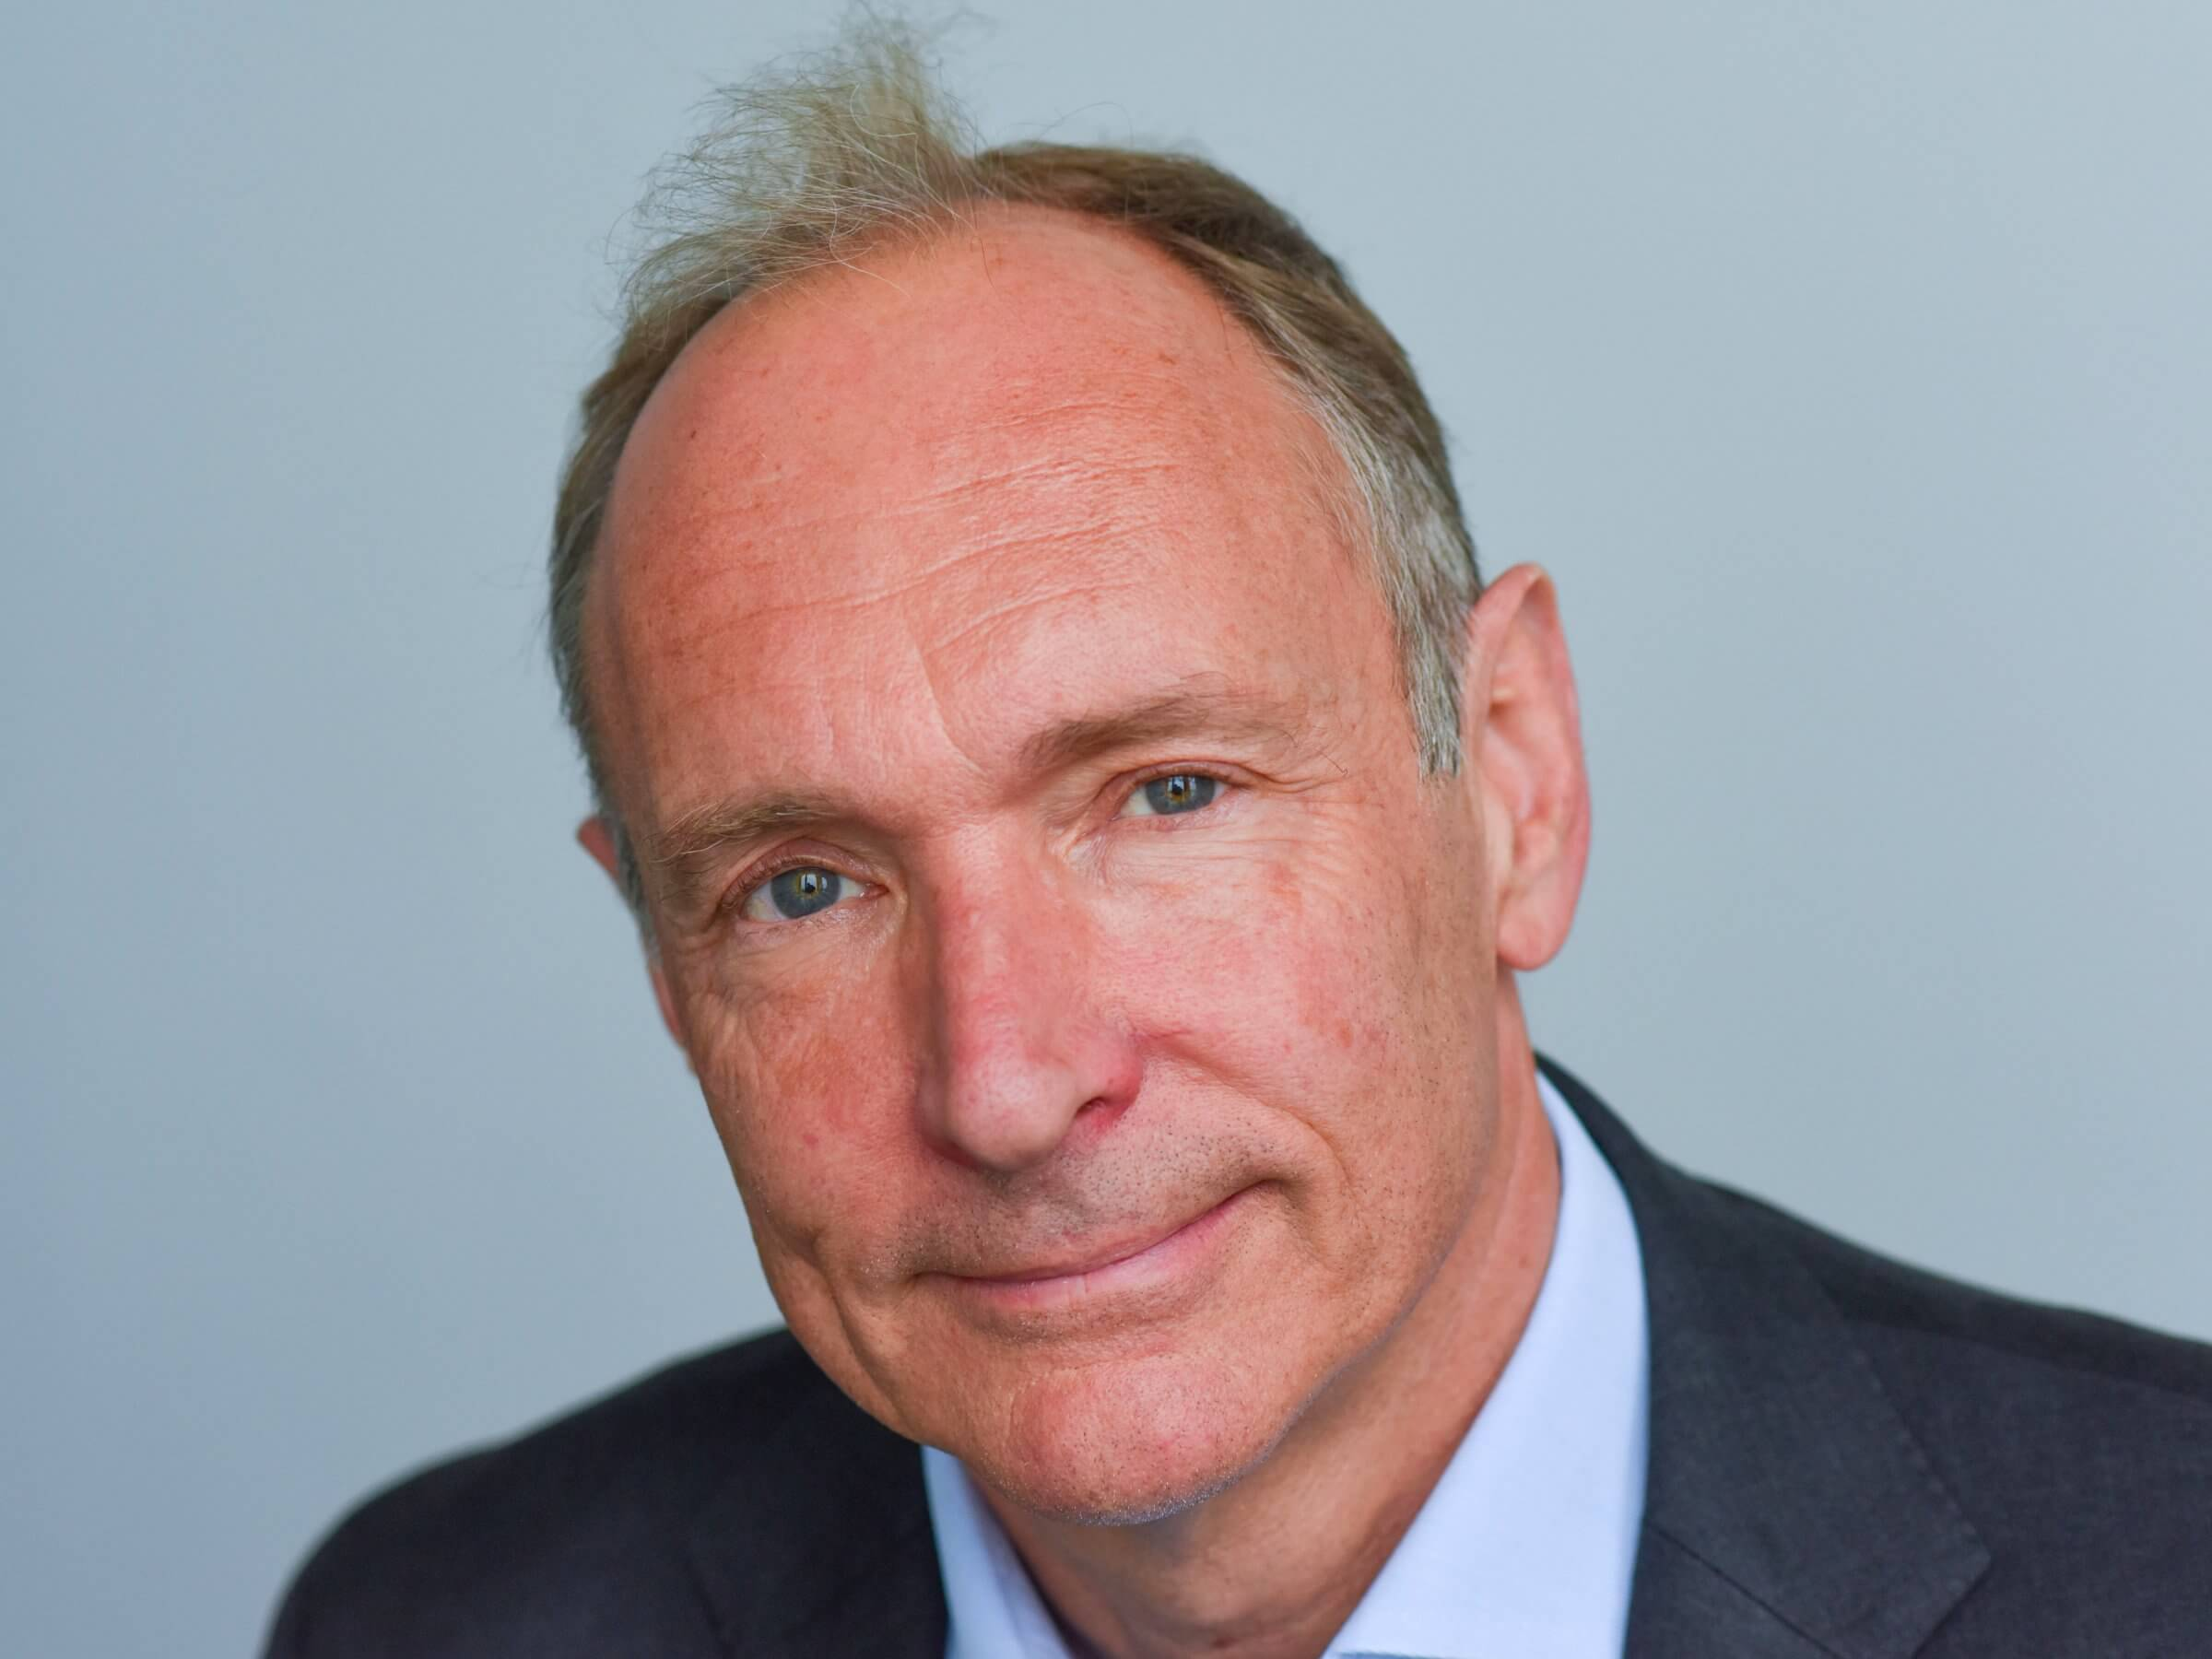 The inventor of the World Wide Web has unveiled a plan for a new secure internet